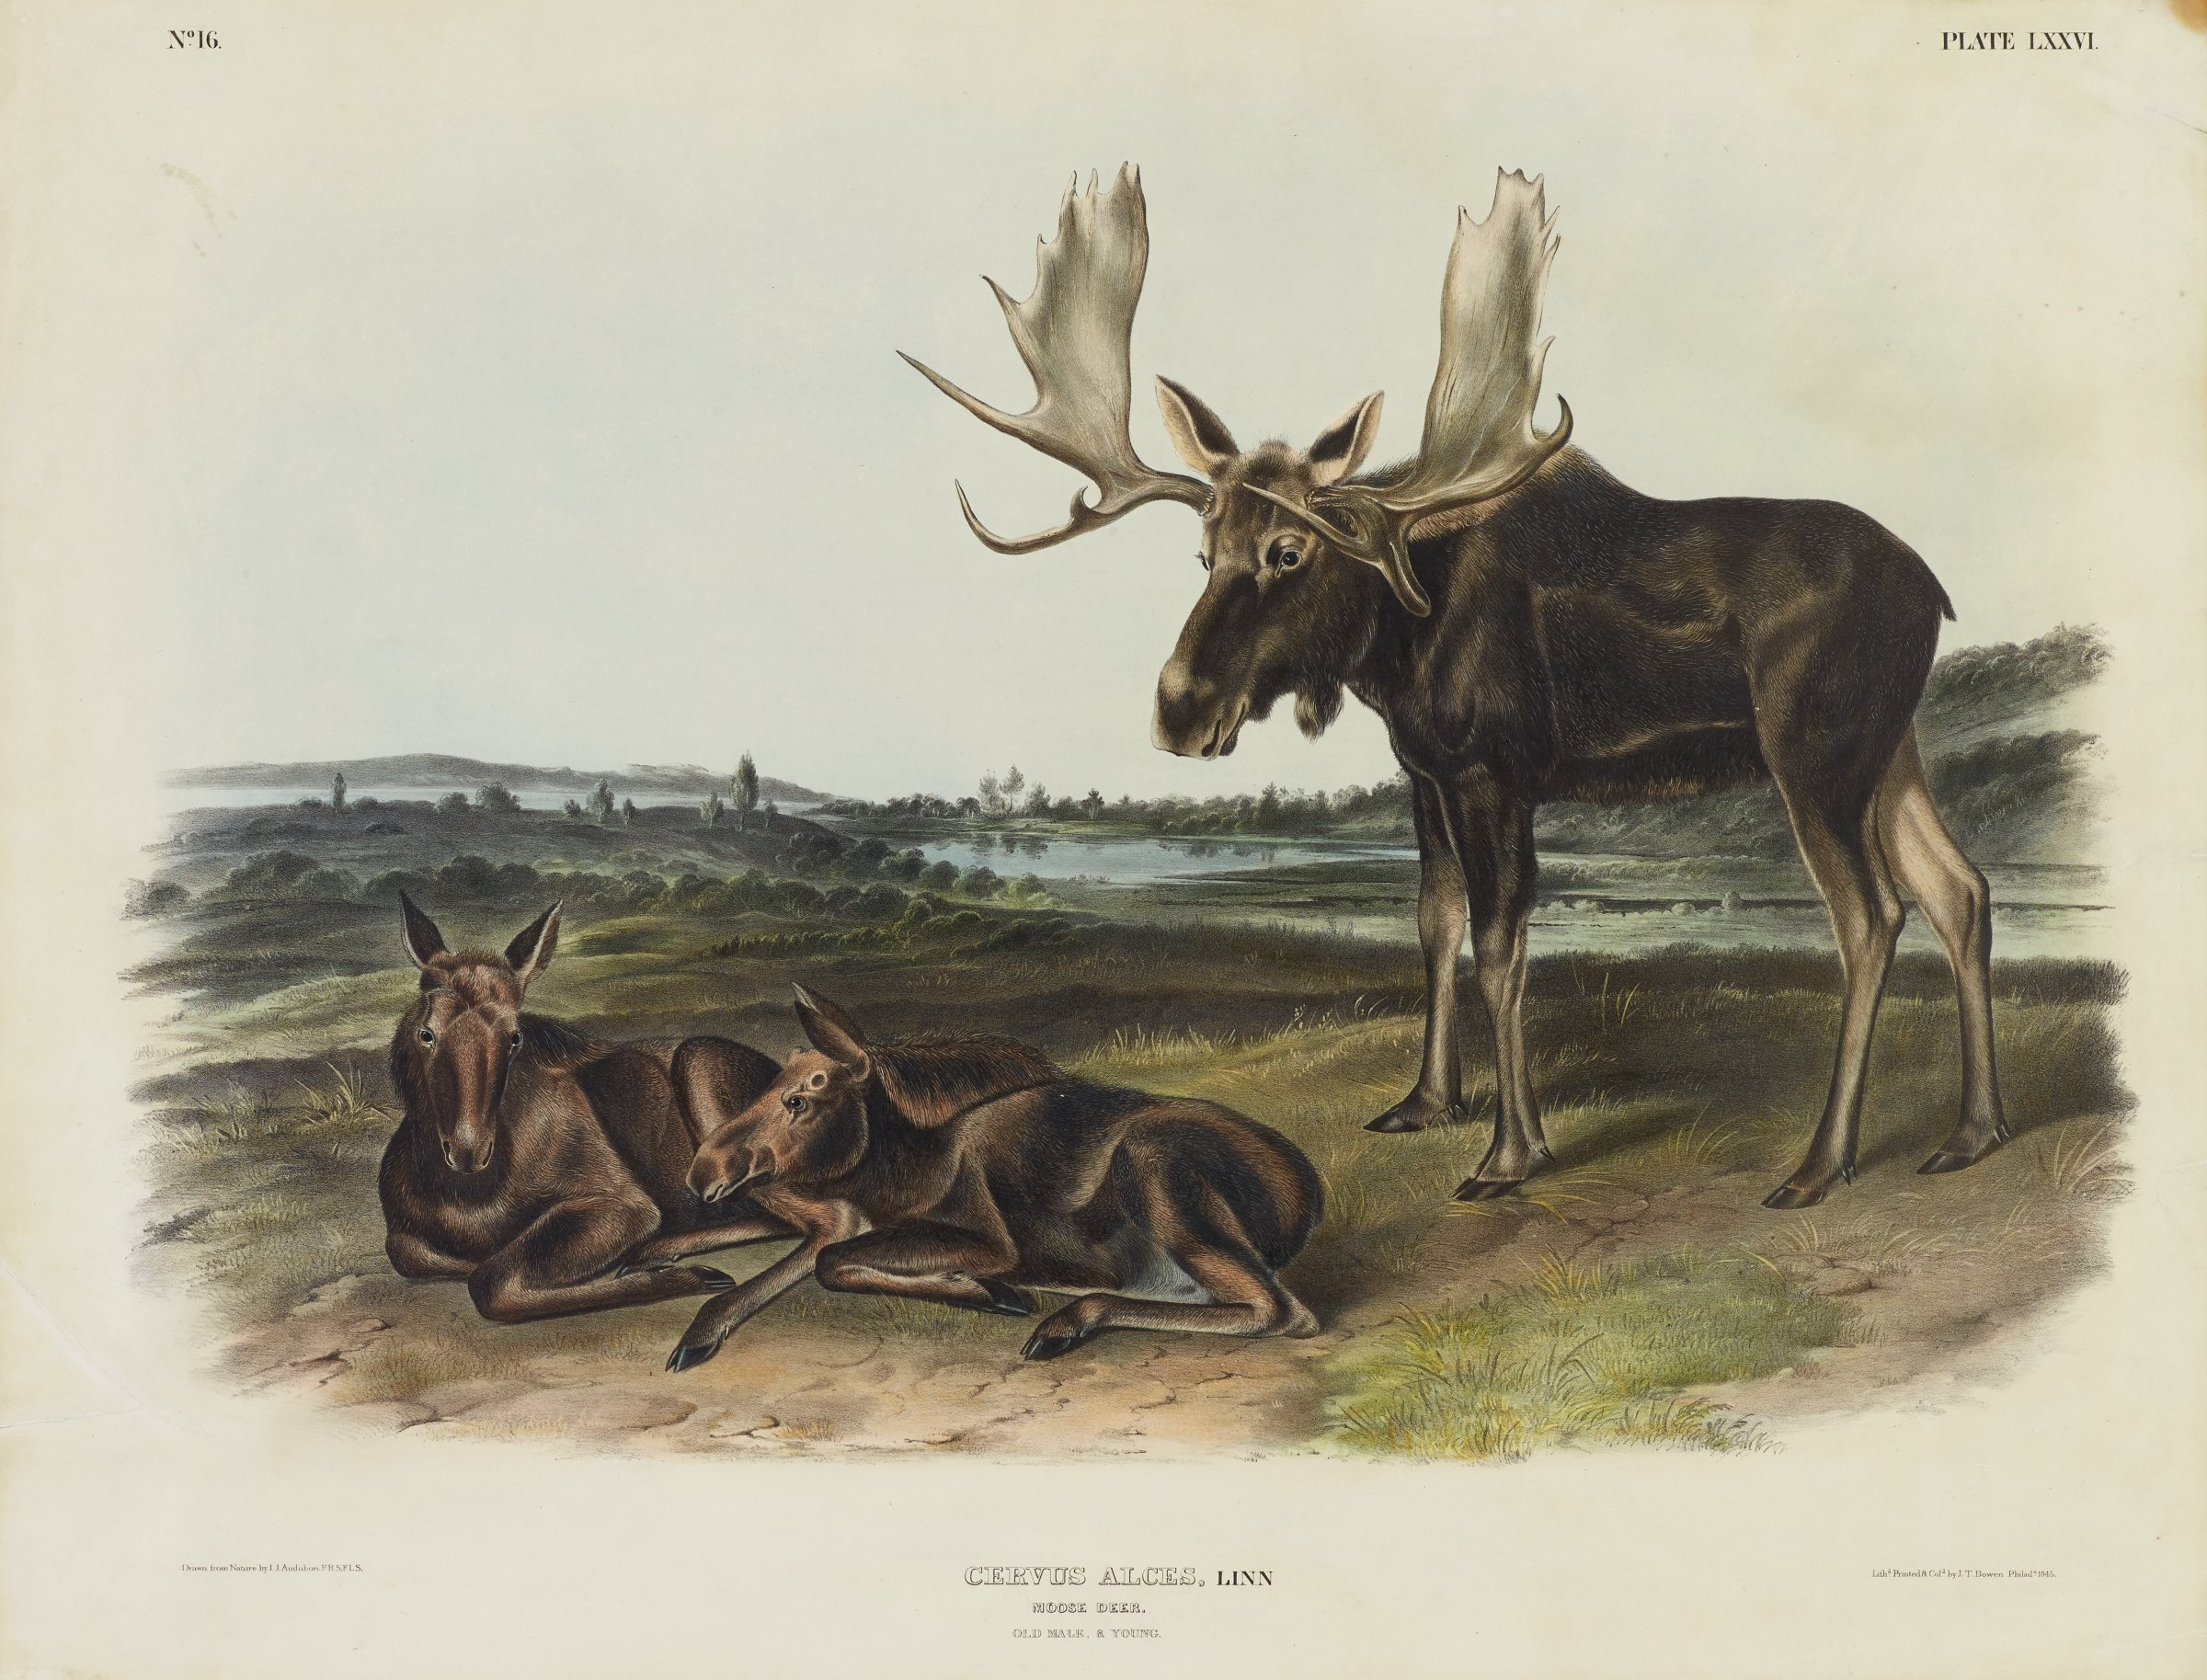 A moose with large, broad antlers stands to the right of two young moose that lay near him. They are set on a grassy field with a body of water in the background.